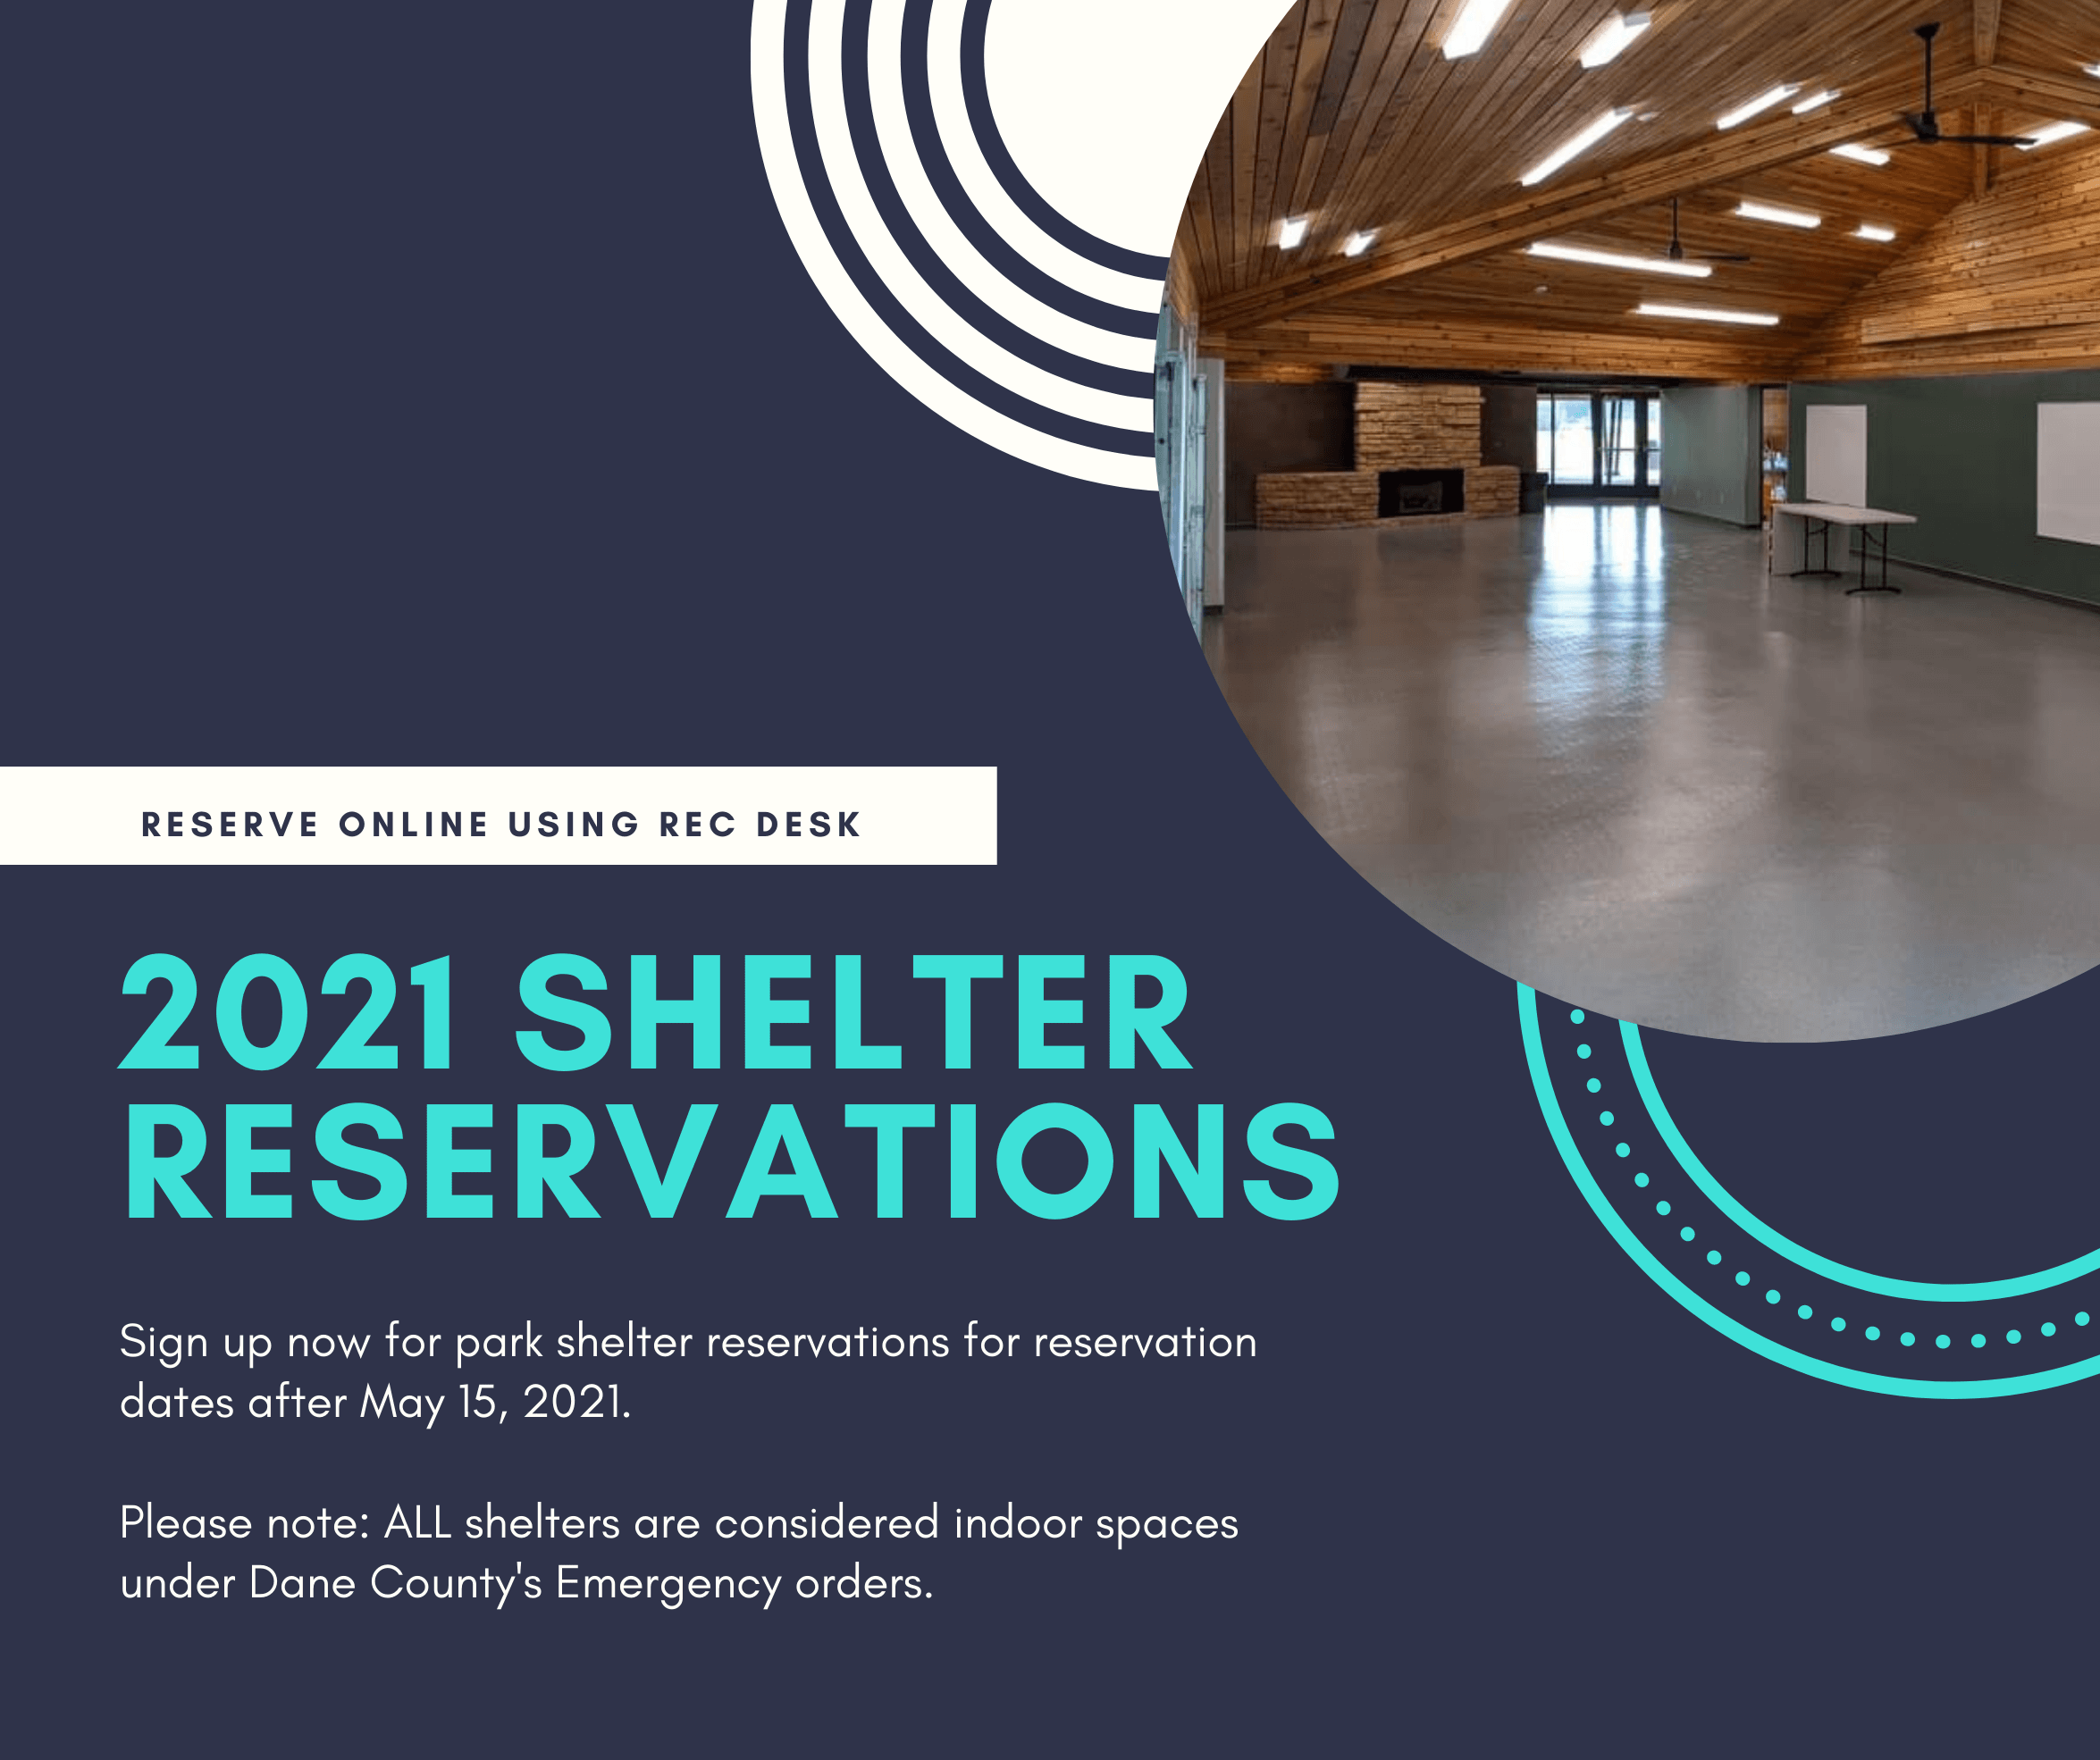 2021 shelter reservations begin Nov 16